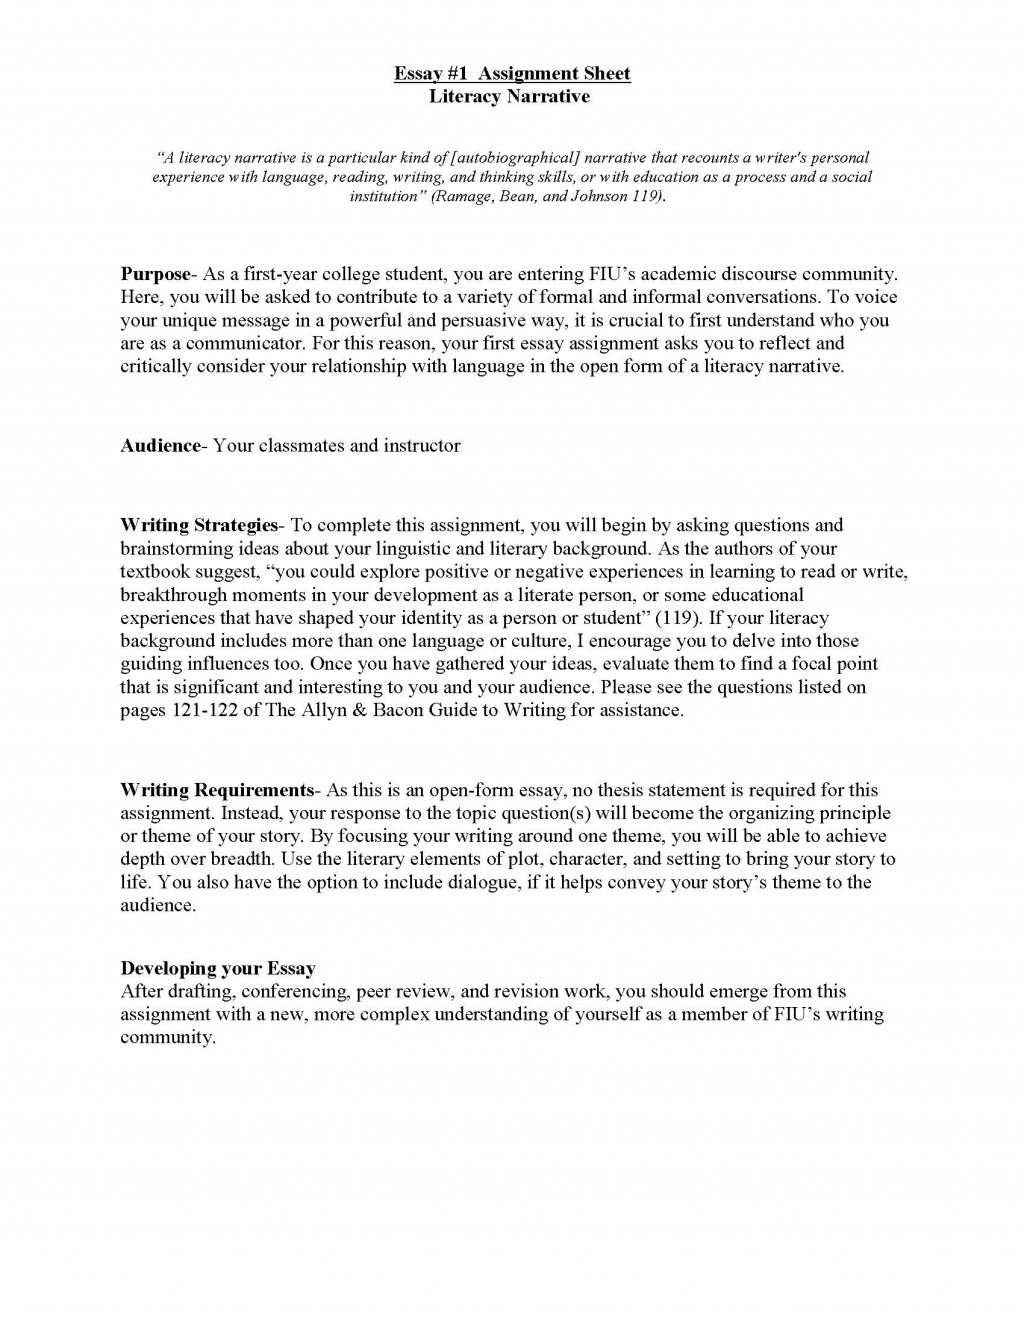 015 Research Paper Literacy Narrative Unit Assignment Spring 2012 Page 1 Human Trafficking Remarkable Example Large